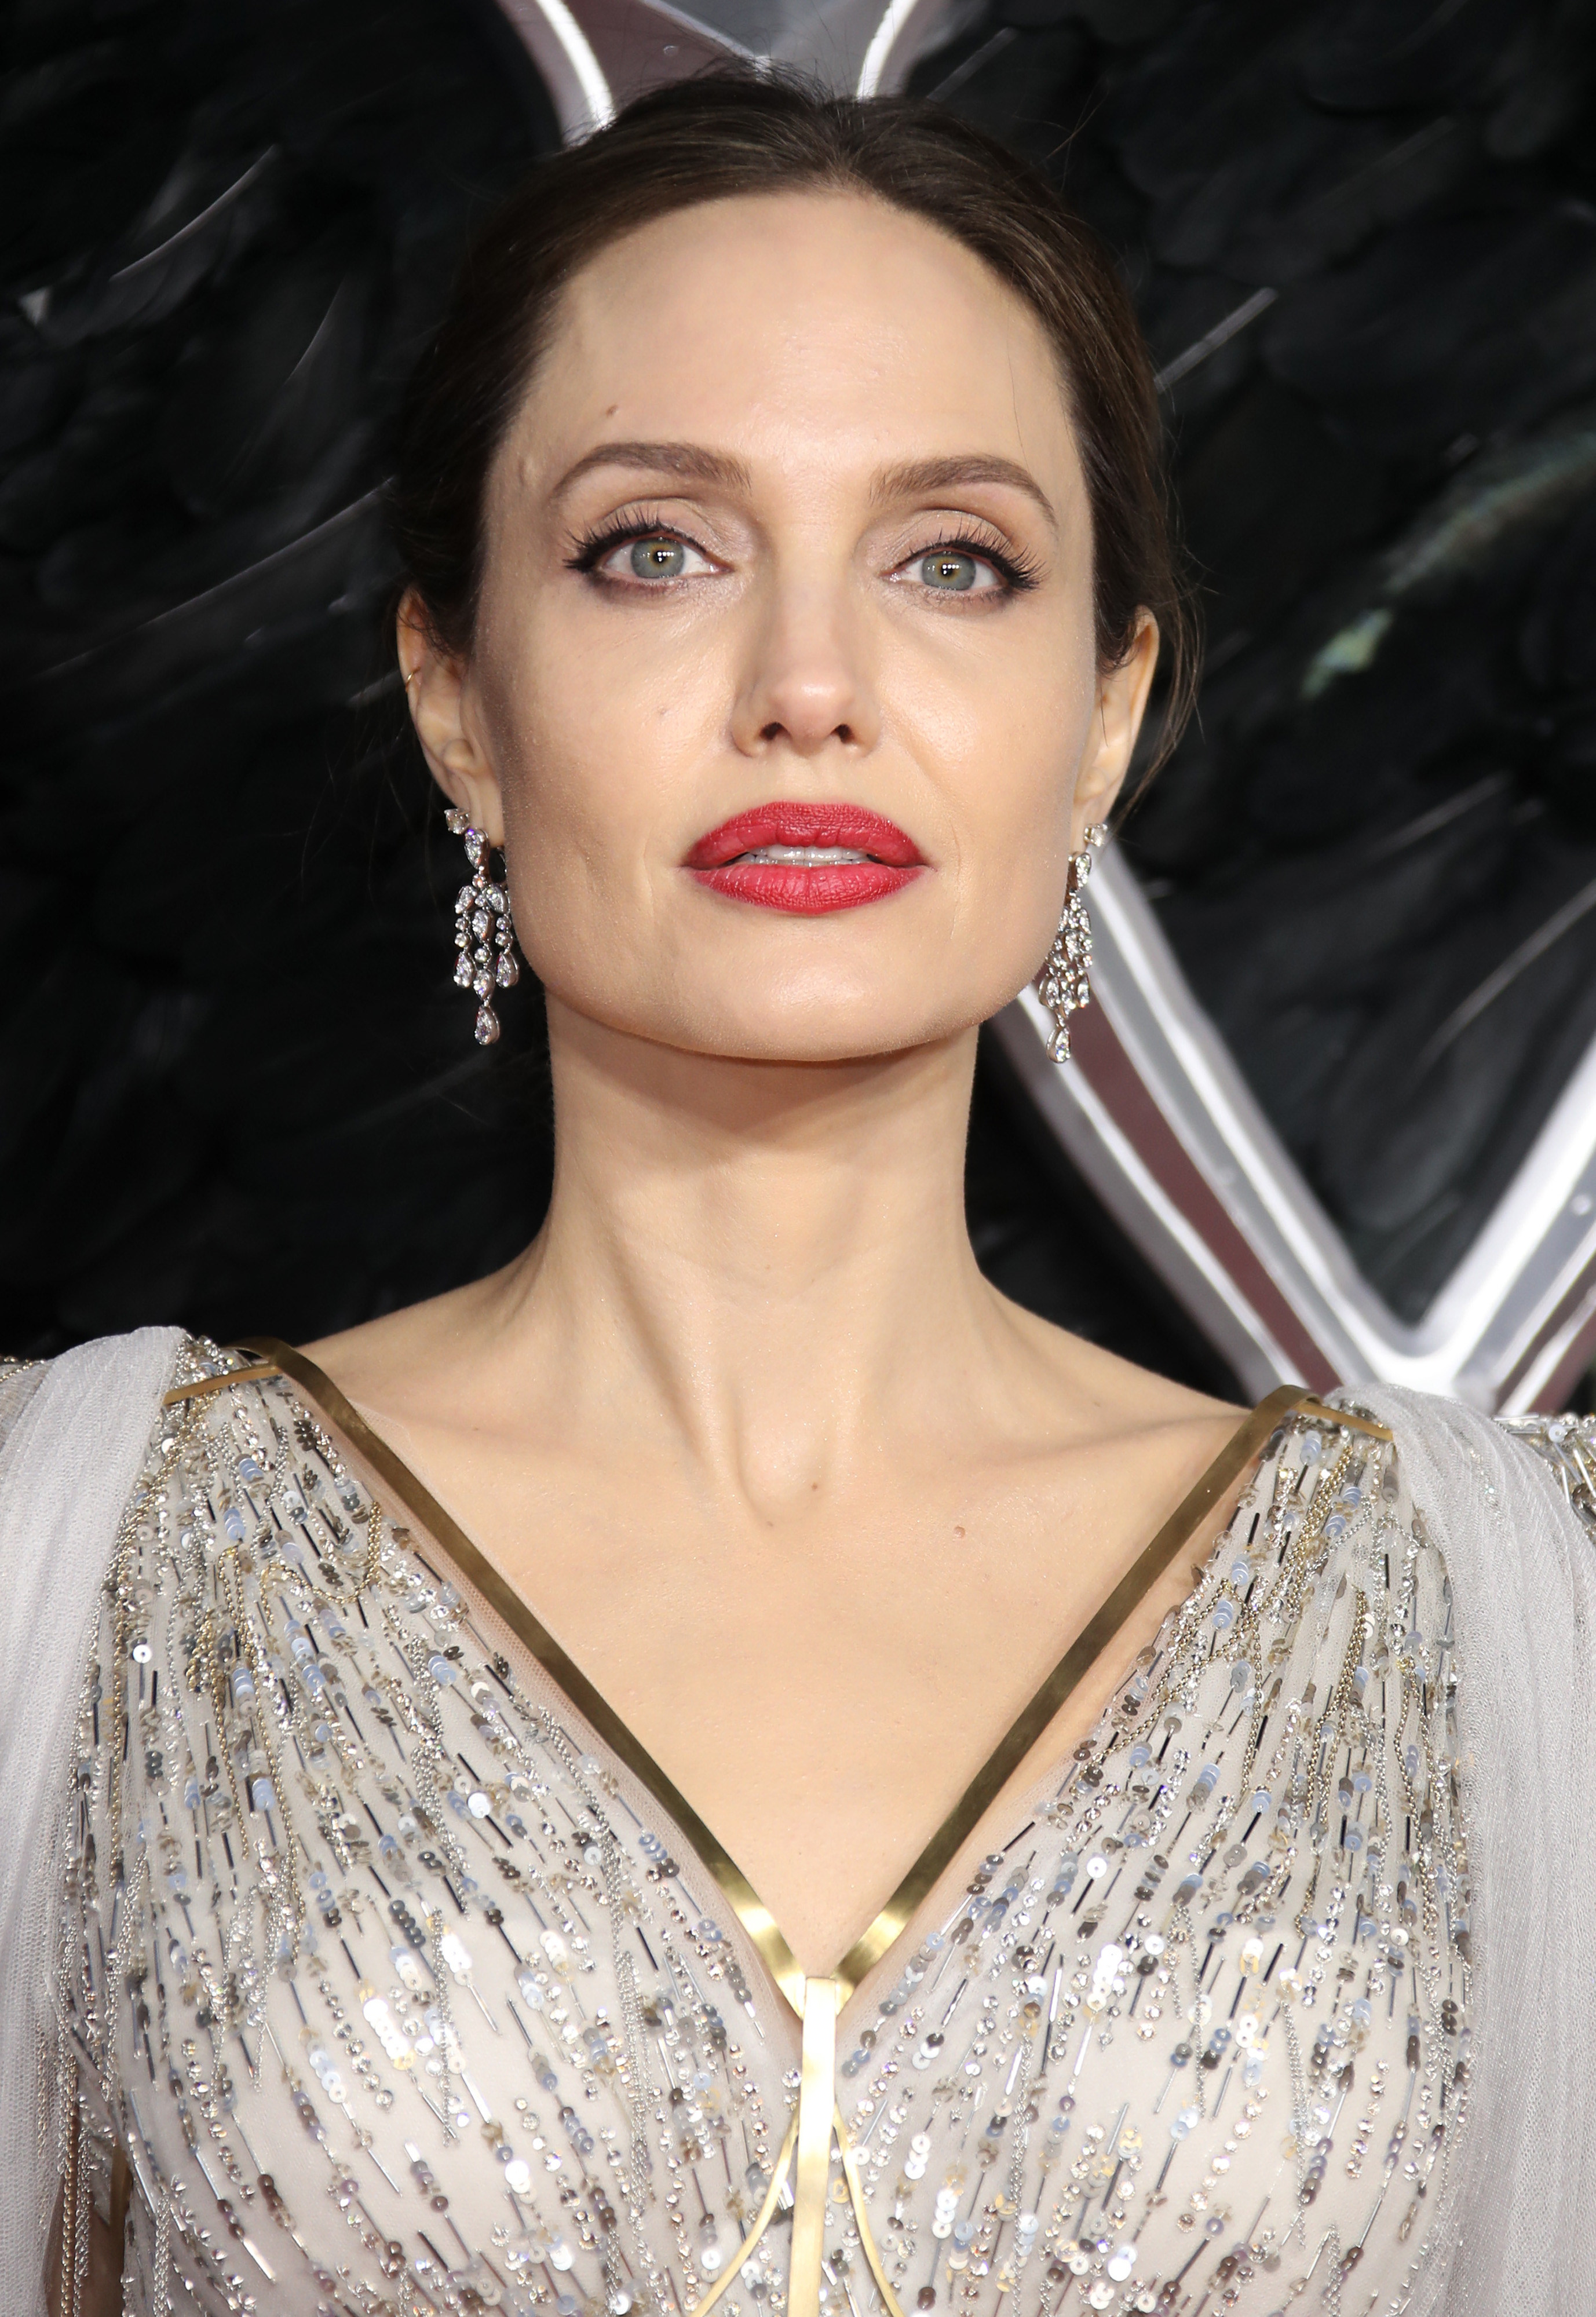 Close-up of Angelina on the red carpet with dangly earrings